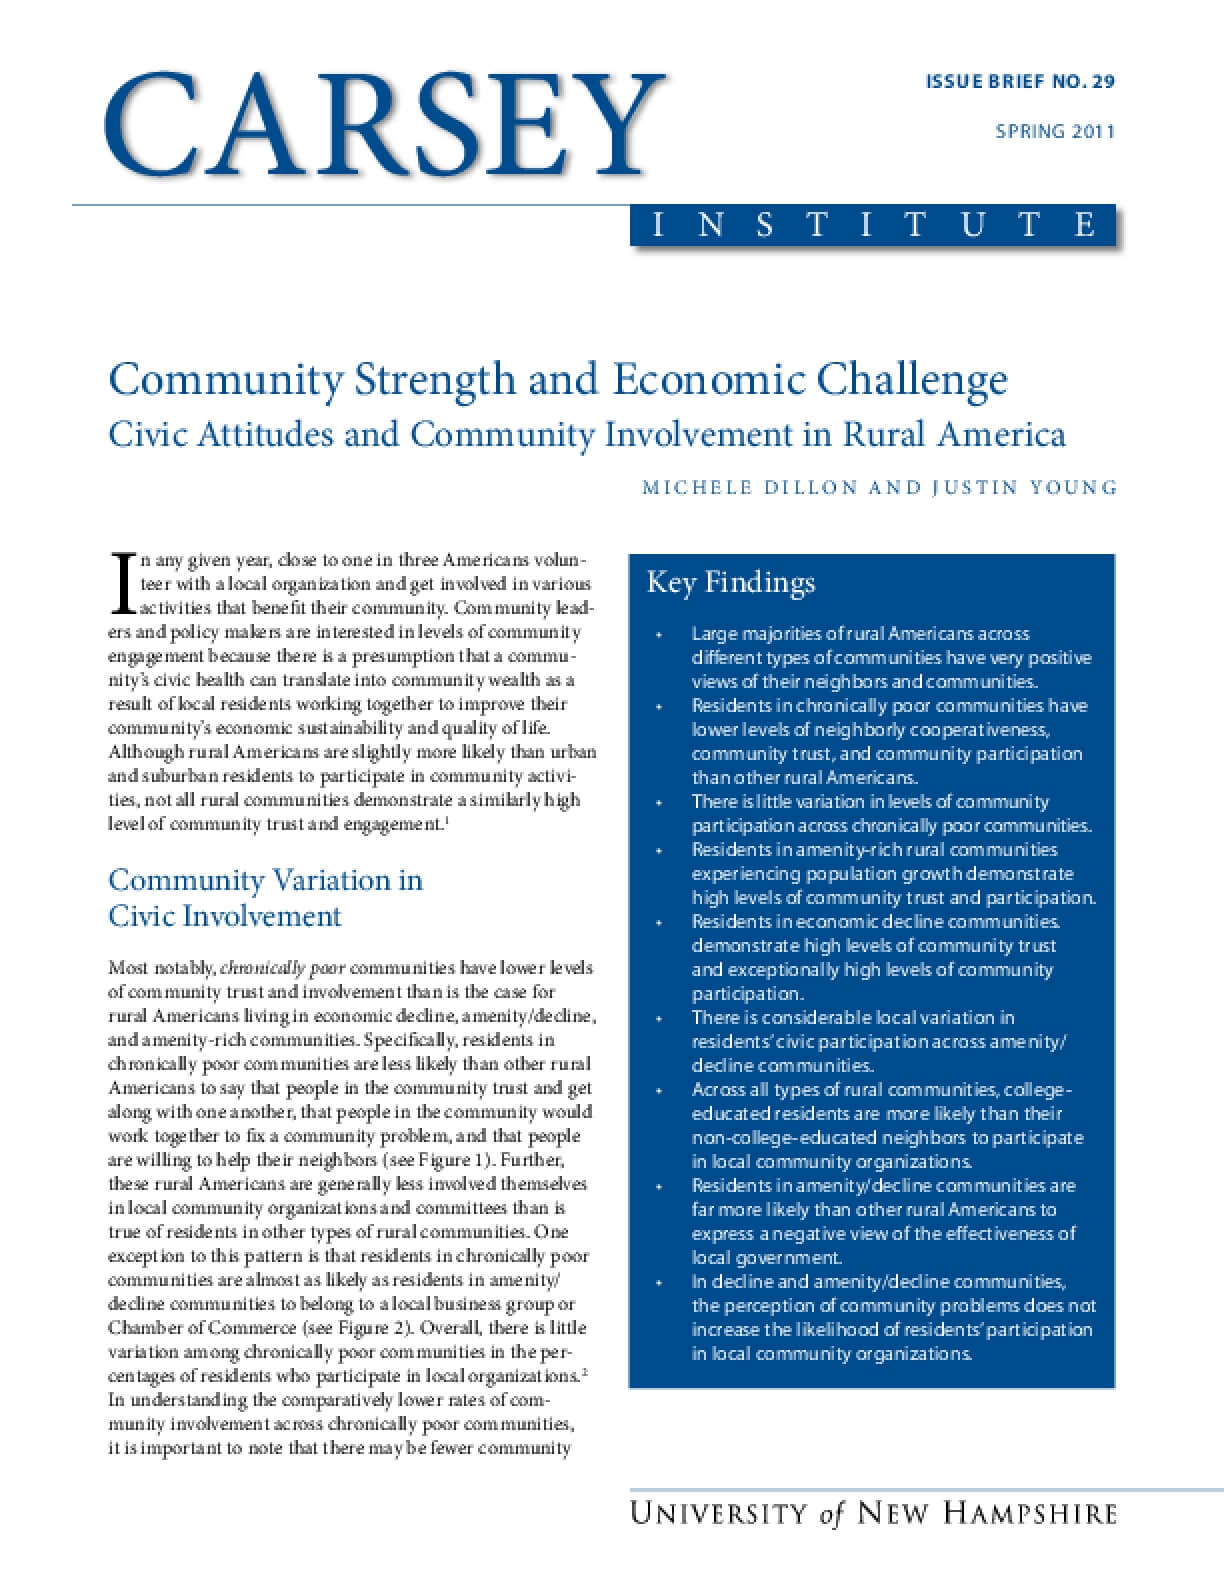 Community Strength and Economic Challenge Civic Attitudes and Community Involvement in Rural America